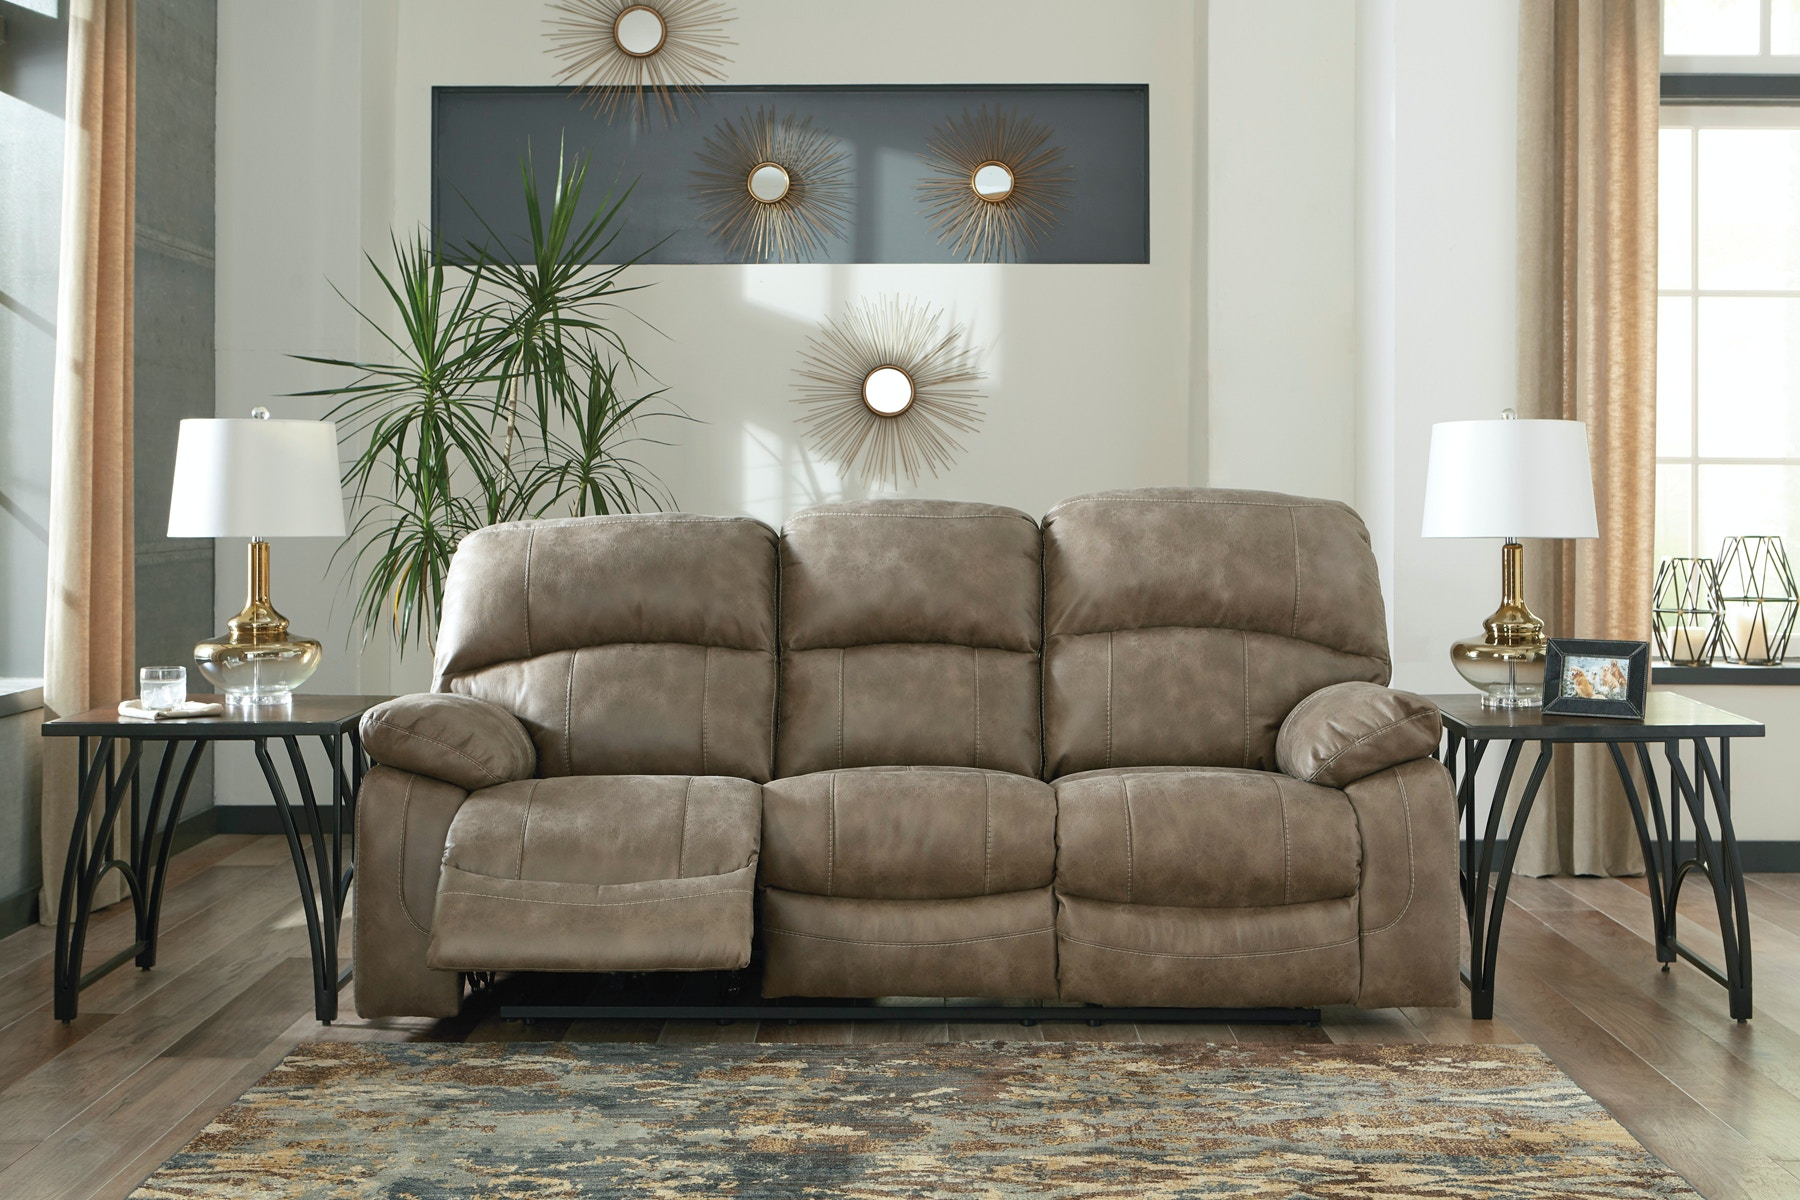 ashley power recliner sofa. Signature Design By Ashley Dunwell Power Reclining Sofa 057080 Recliner